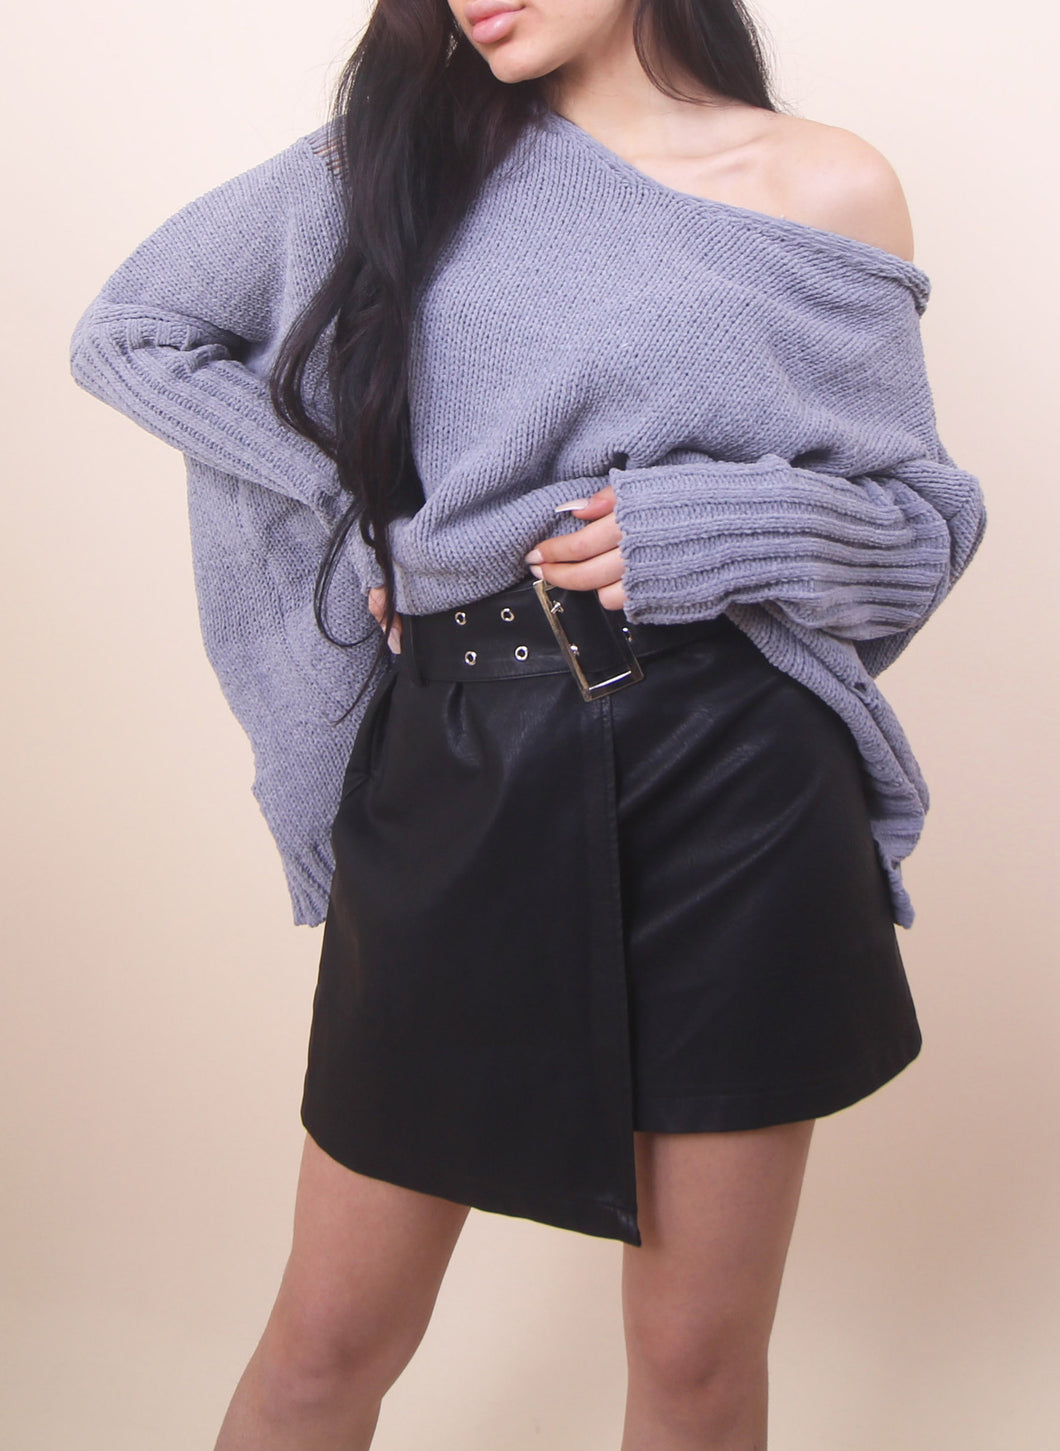 'AMY' Distressed Sweater - Gray